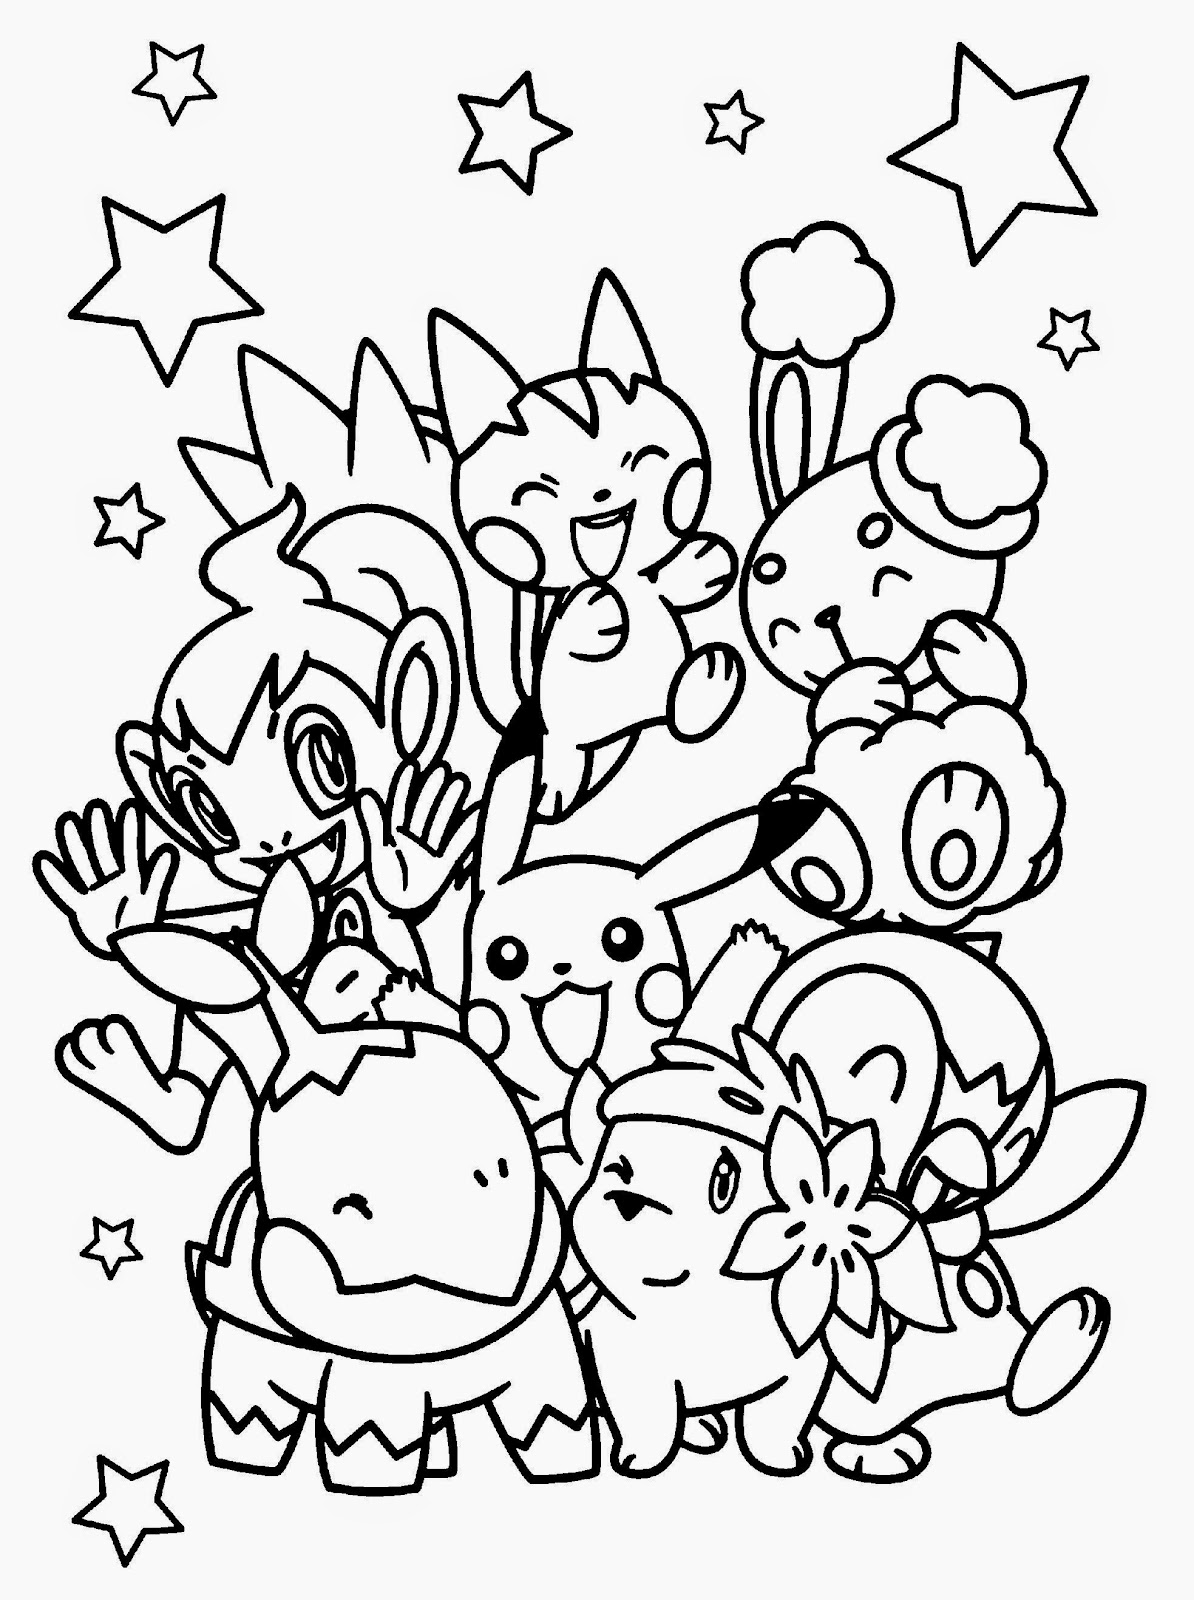 Pokemon Coloring Sheet | Free Coloring Sheet